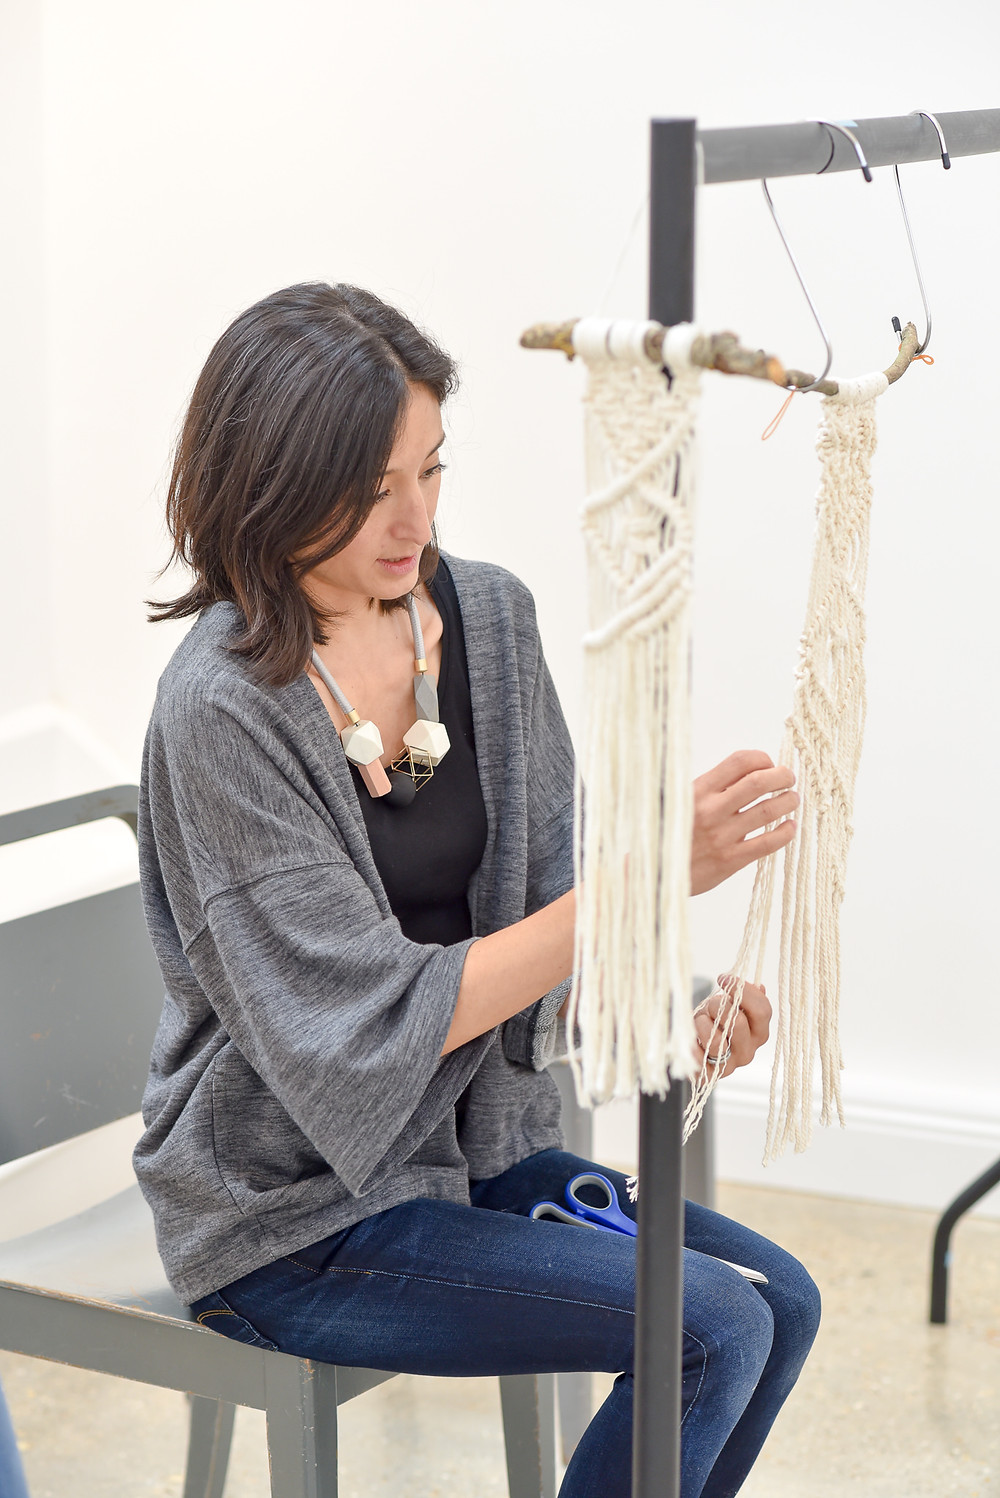 Myself teaching macrame at one of my workshops